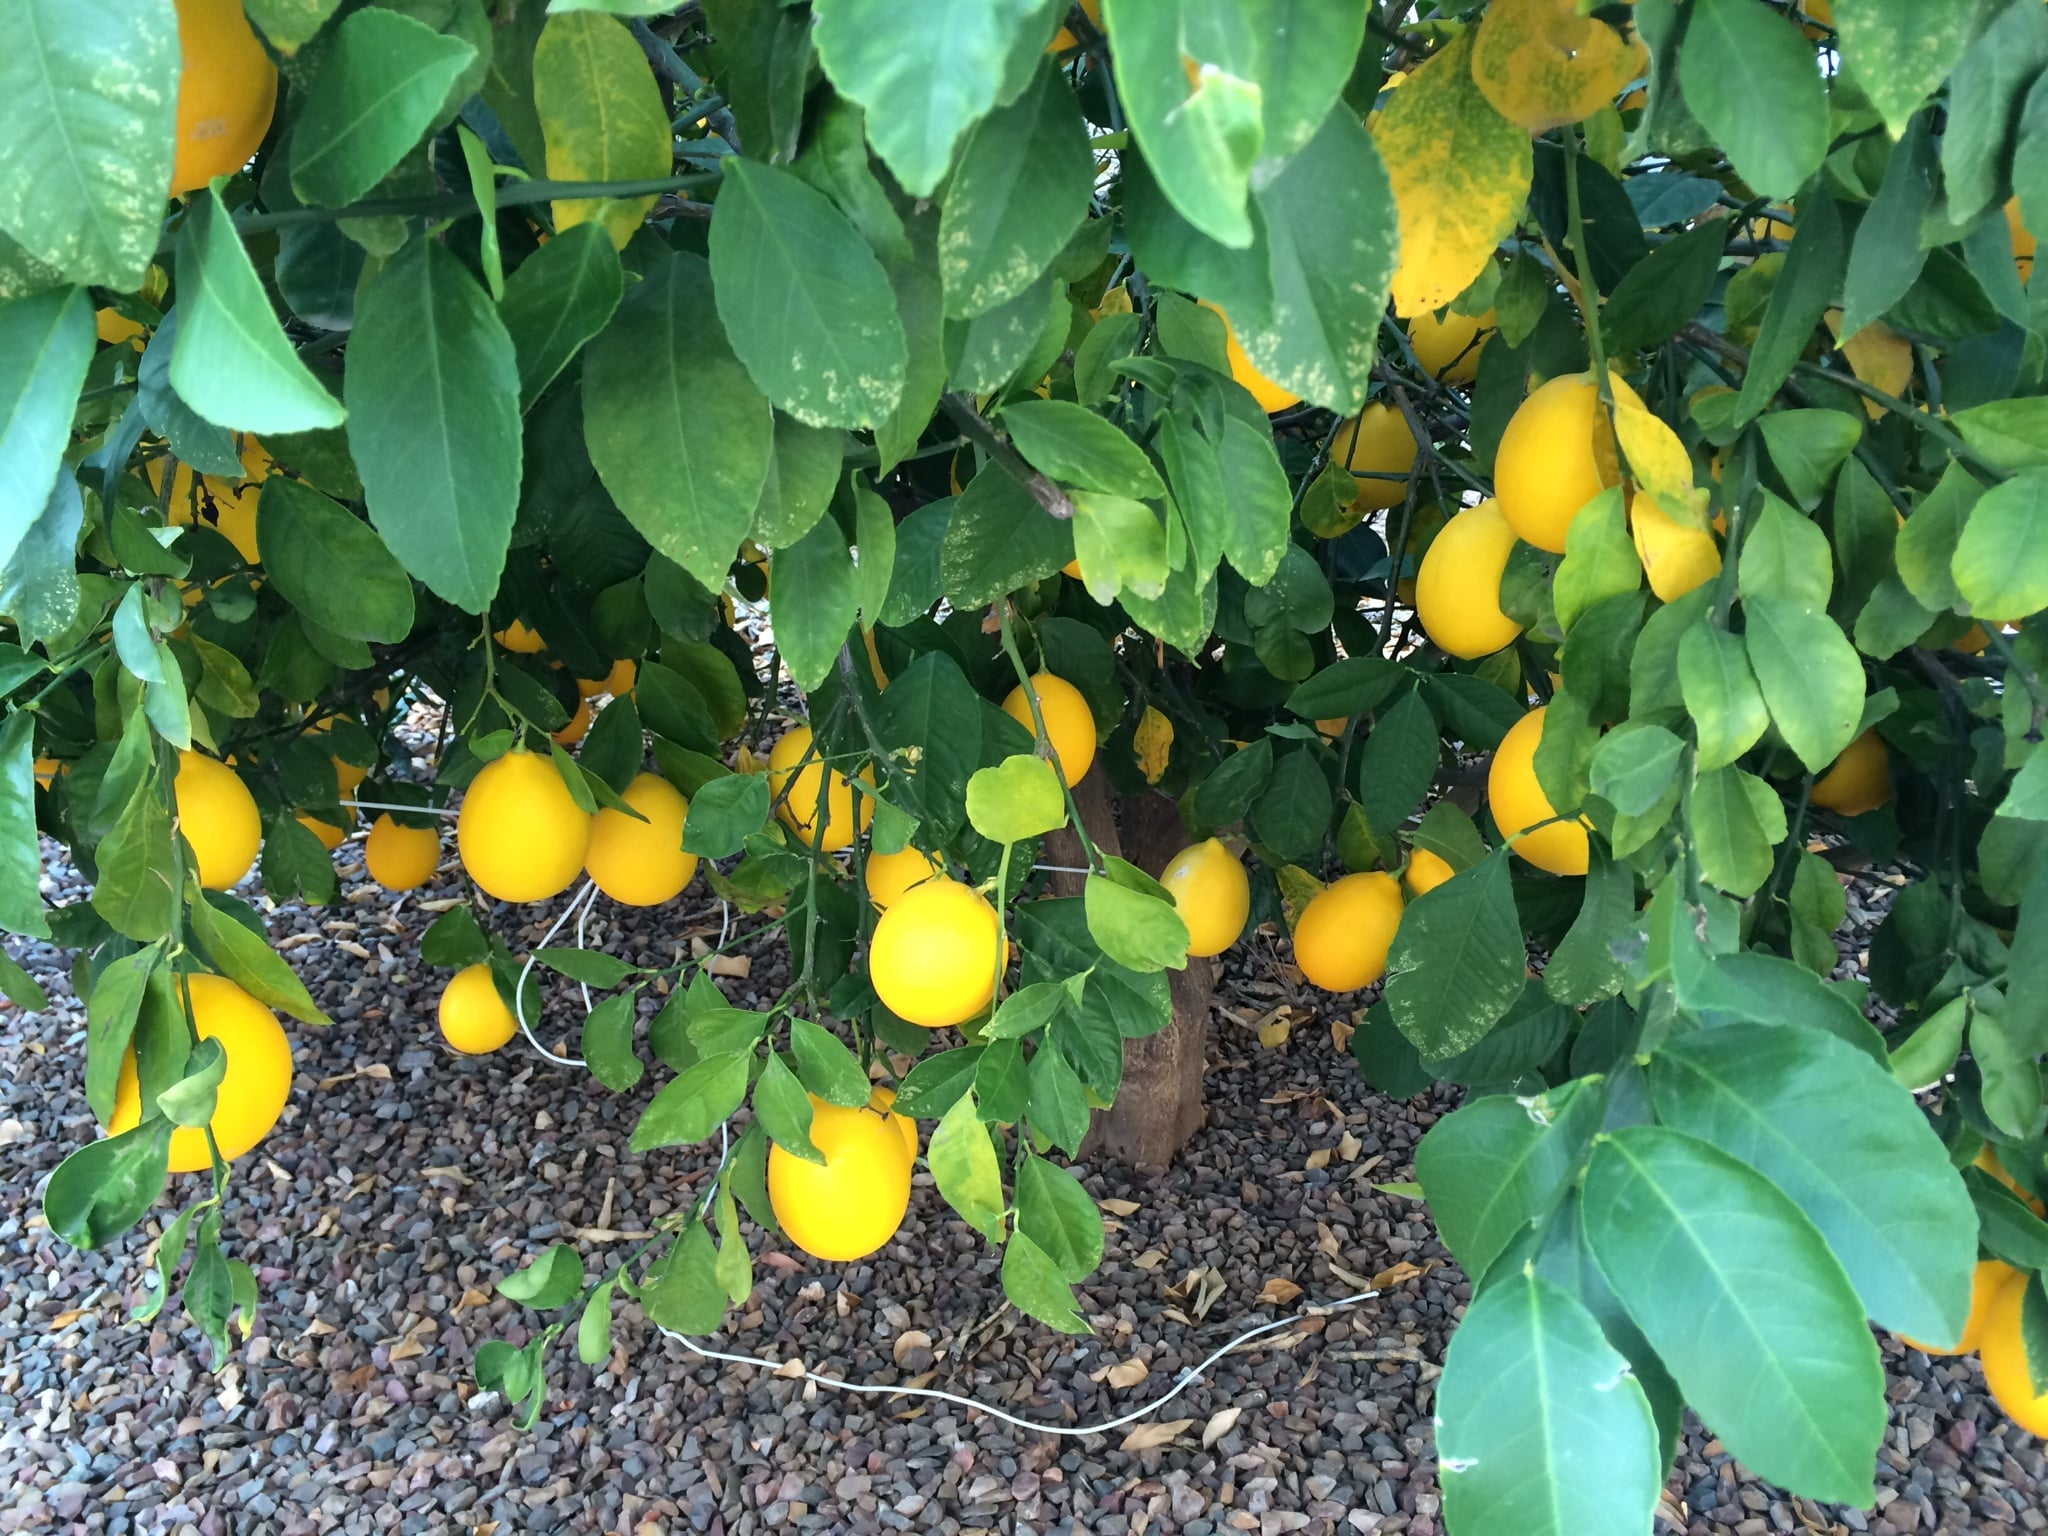 The lemon trees!